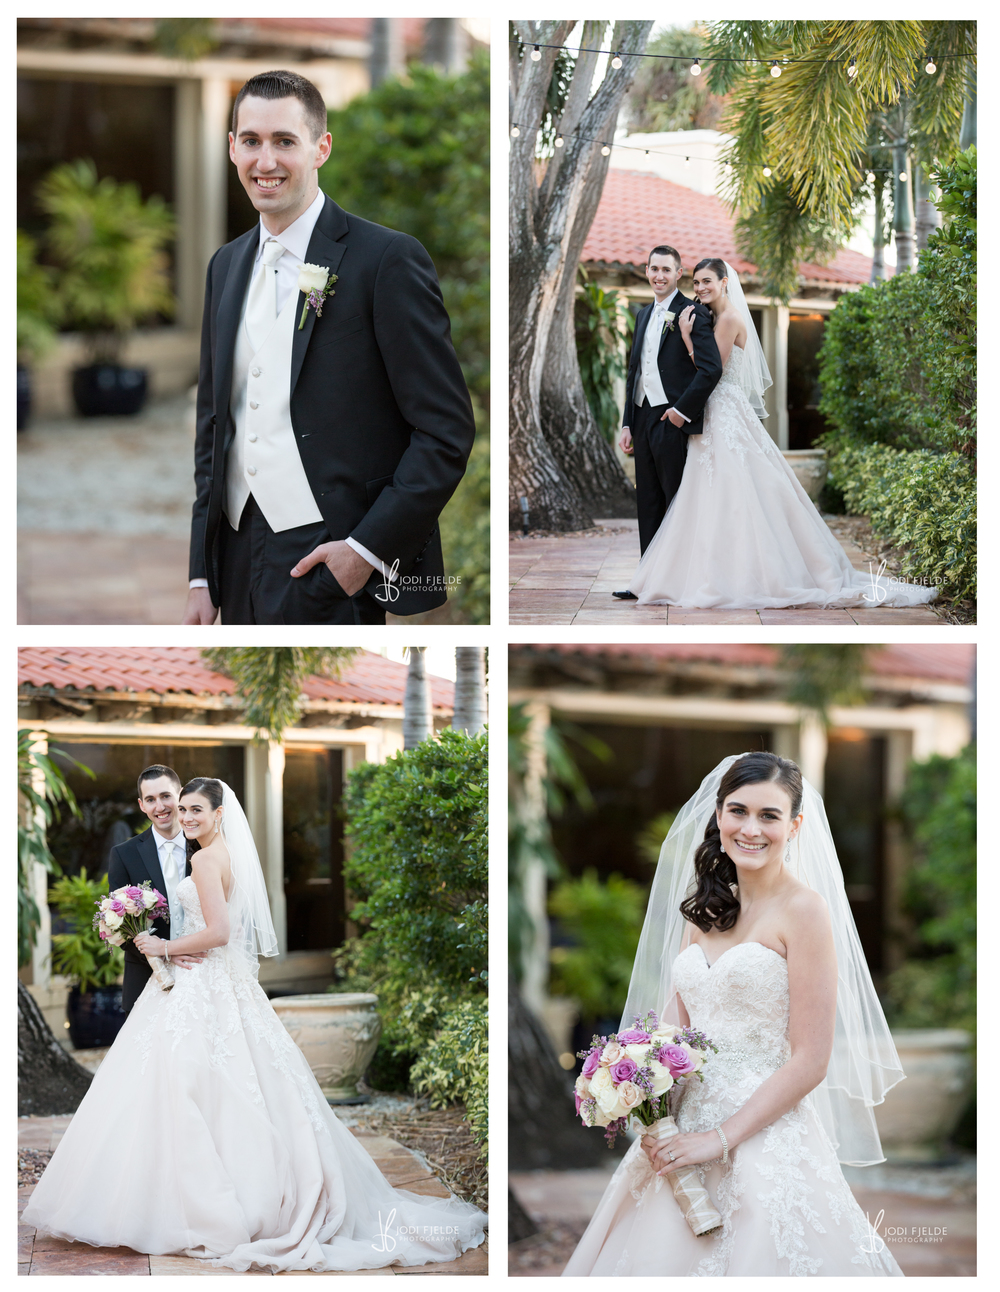 Benvenuto_Palm_Beach_Wedding_Jewish_Michelle & Jason_Jodi_Fjedle_Photography 33.jpg